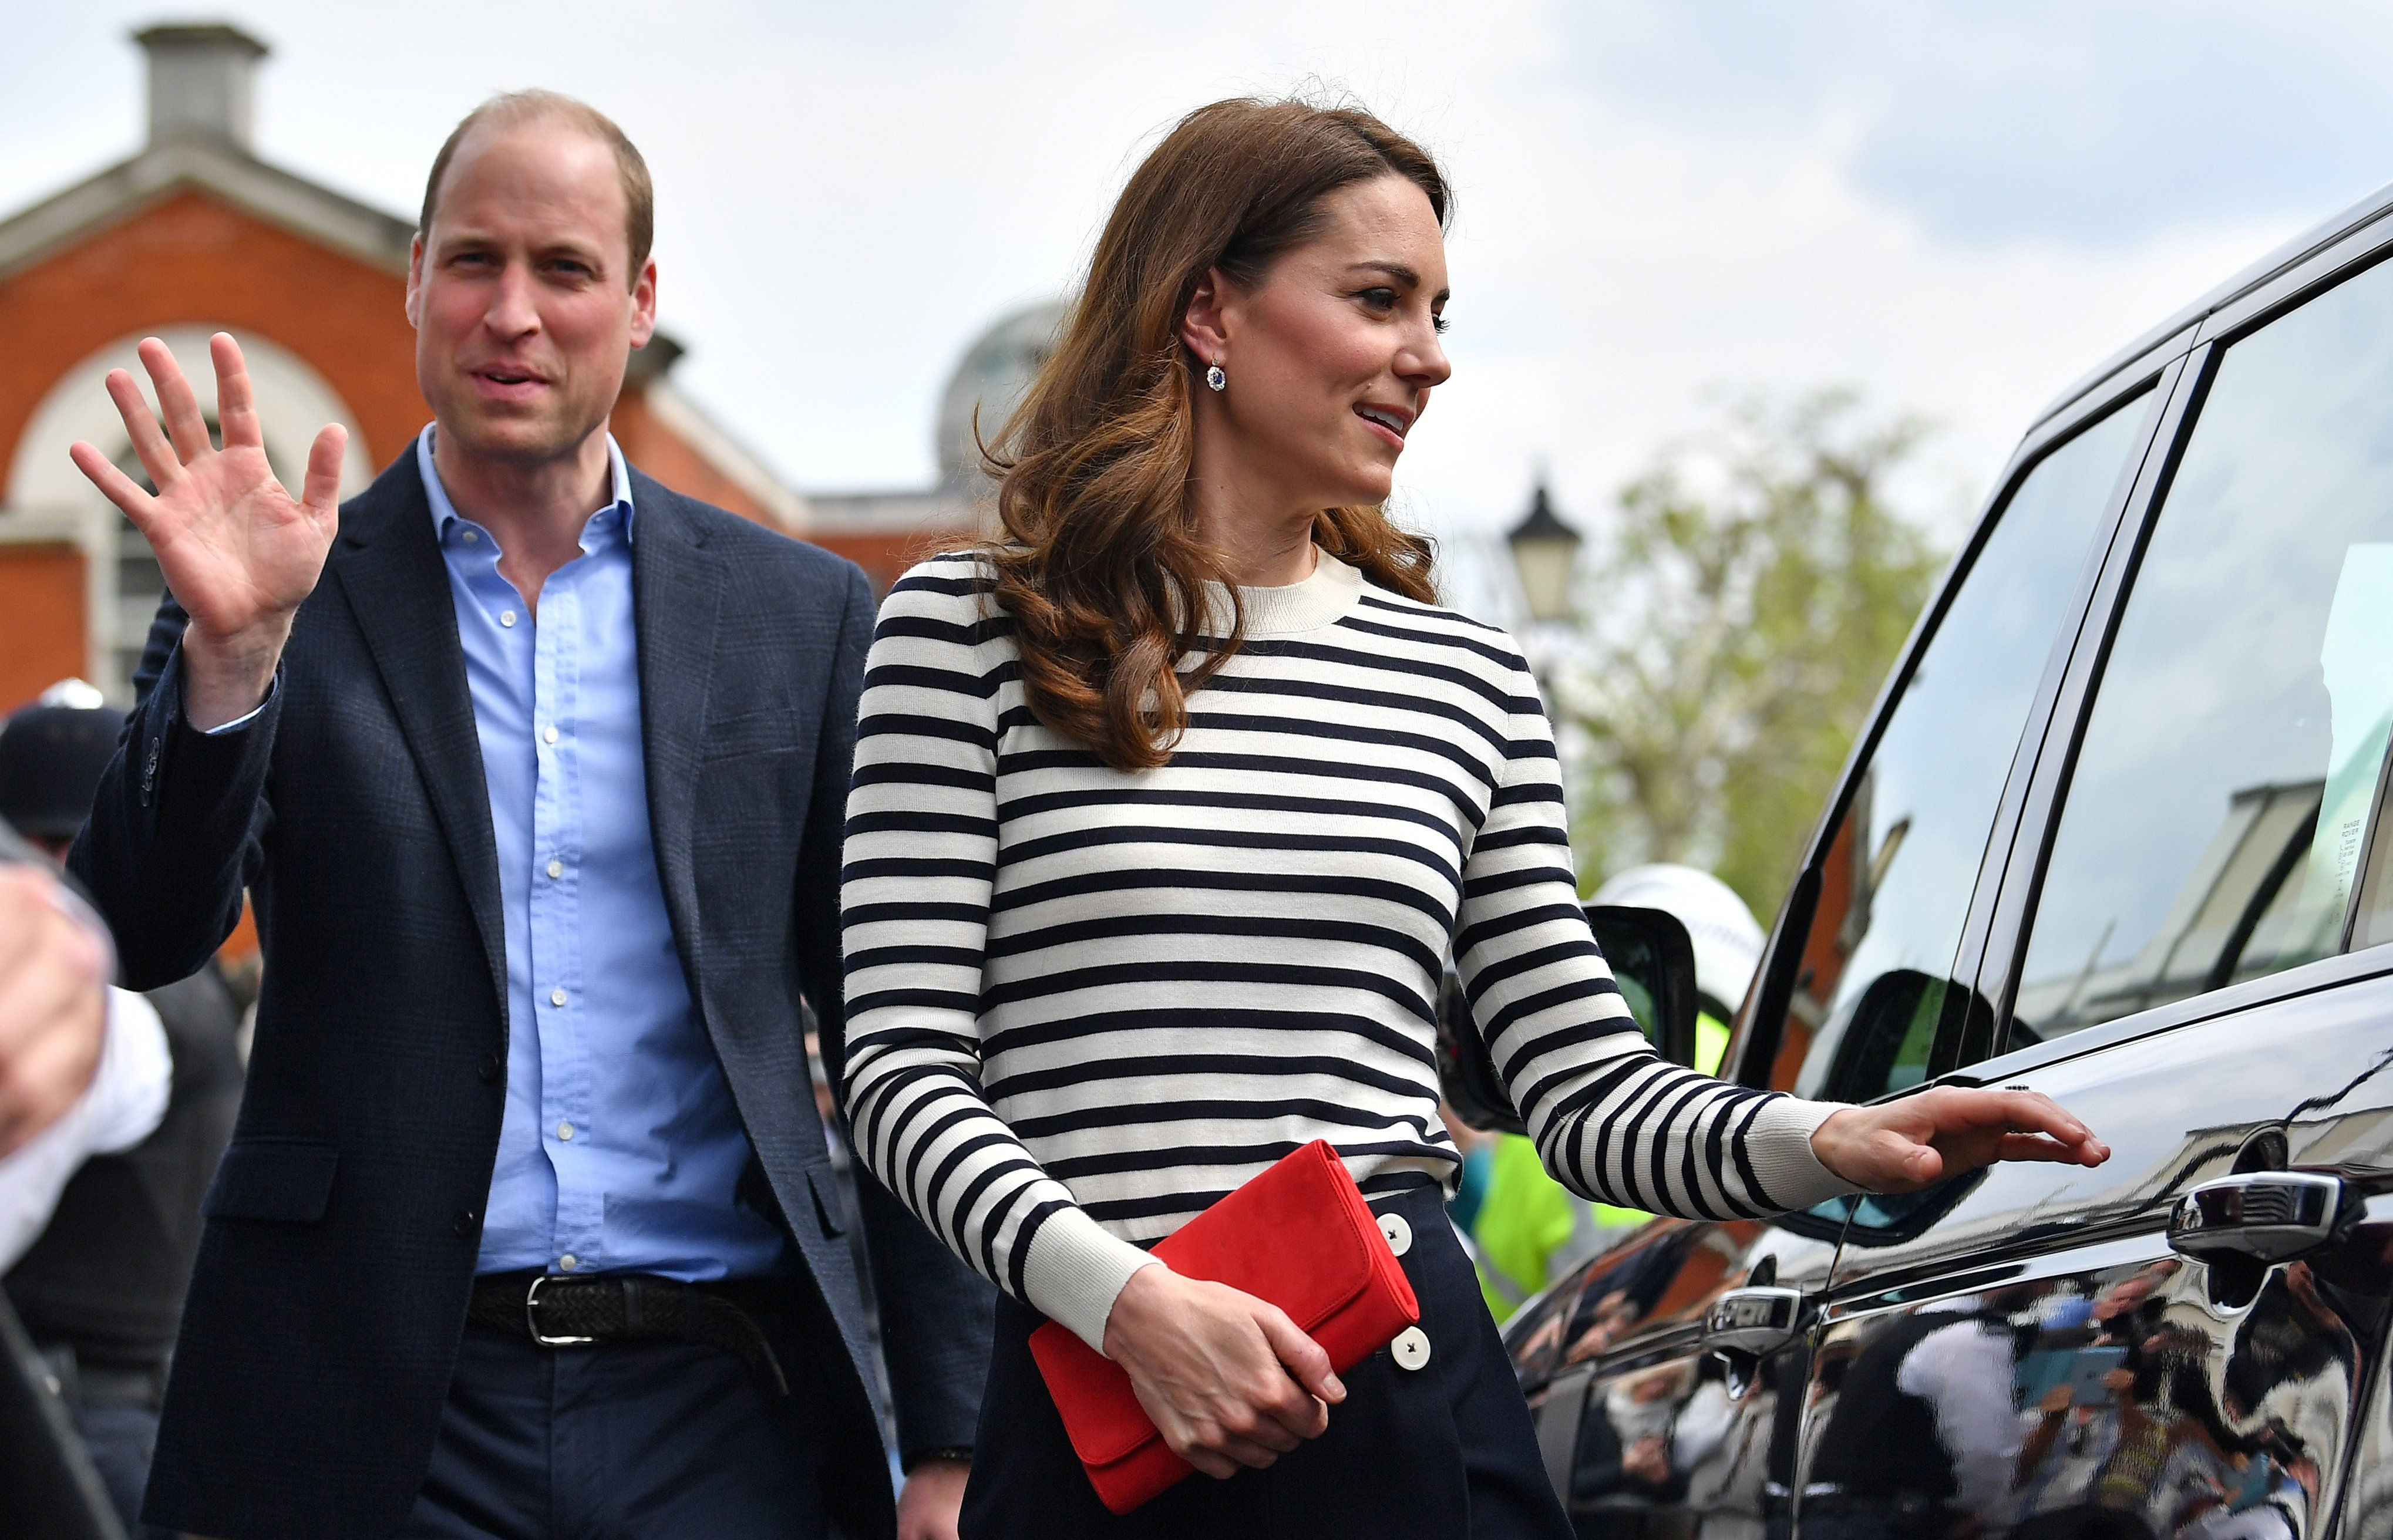 Prince William and Kate Middleton, sporting a nautical themed outfit, arrive at the King's Cup Regatta at Cutty Sark, Greenwich on May 7, 2019, in London, England. | Source: Getty Images.